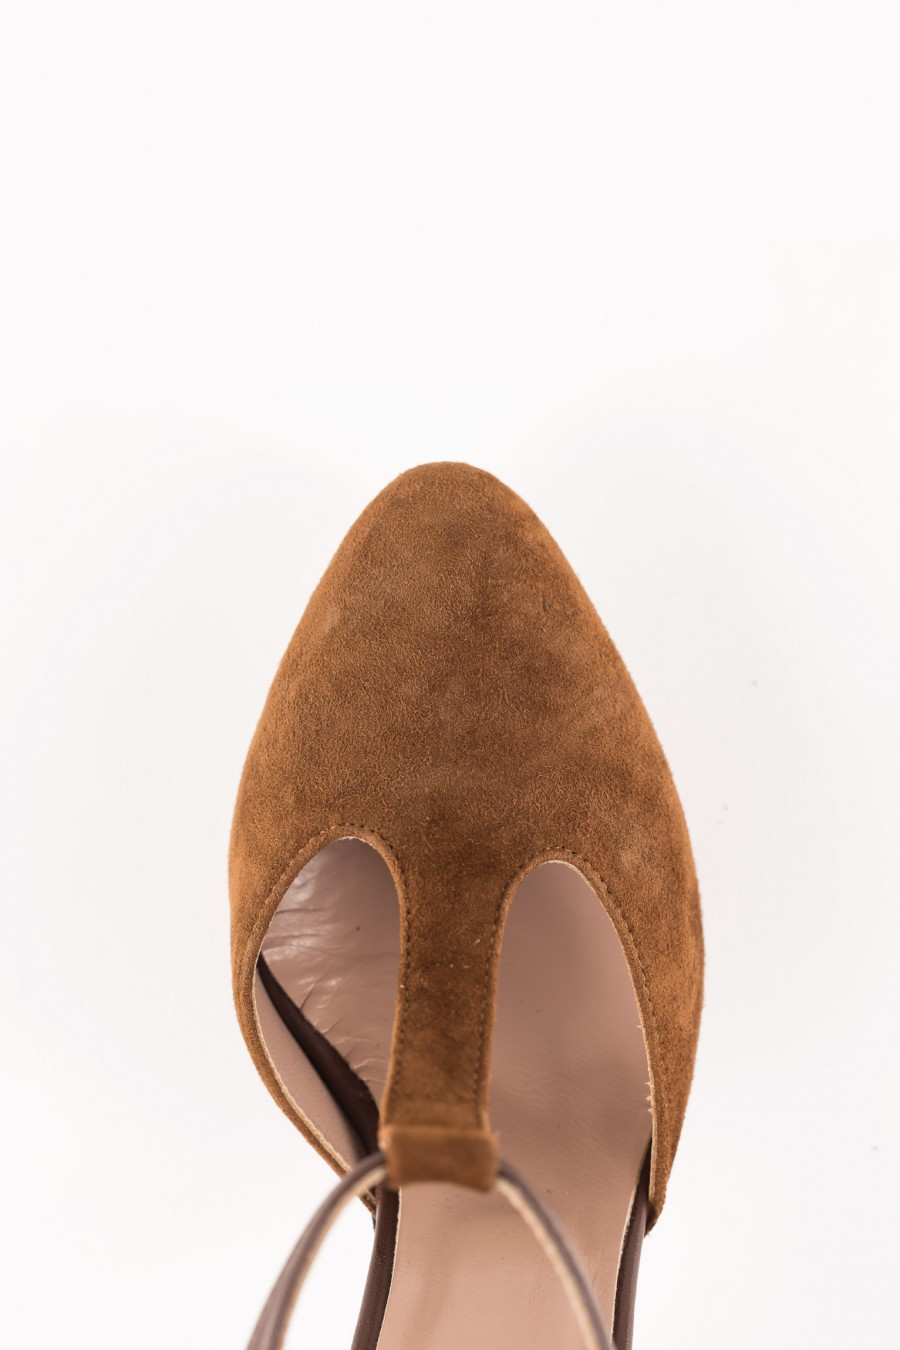 Suede heels with t strap